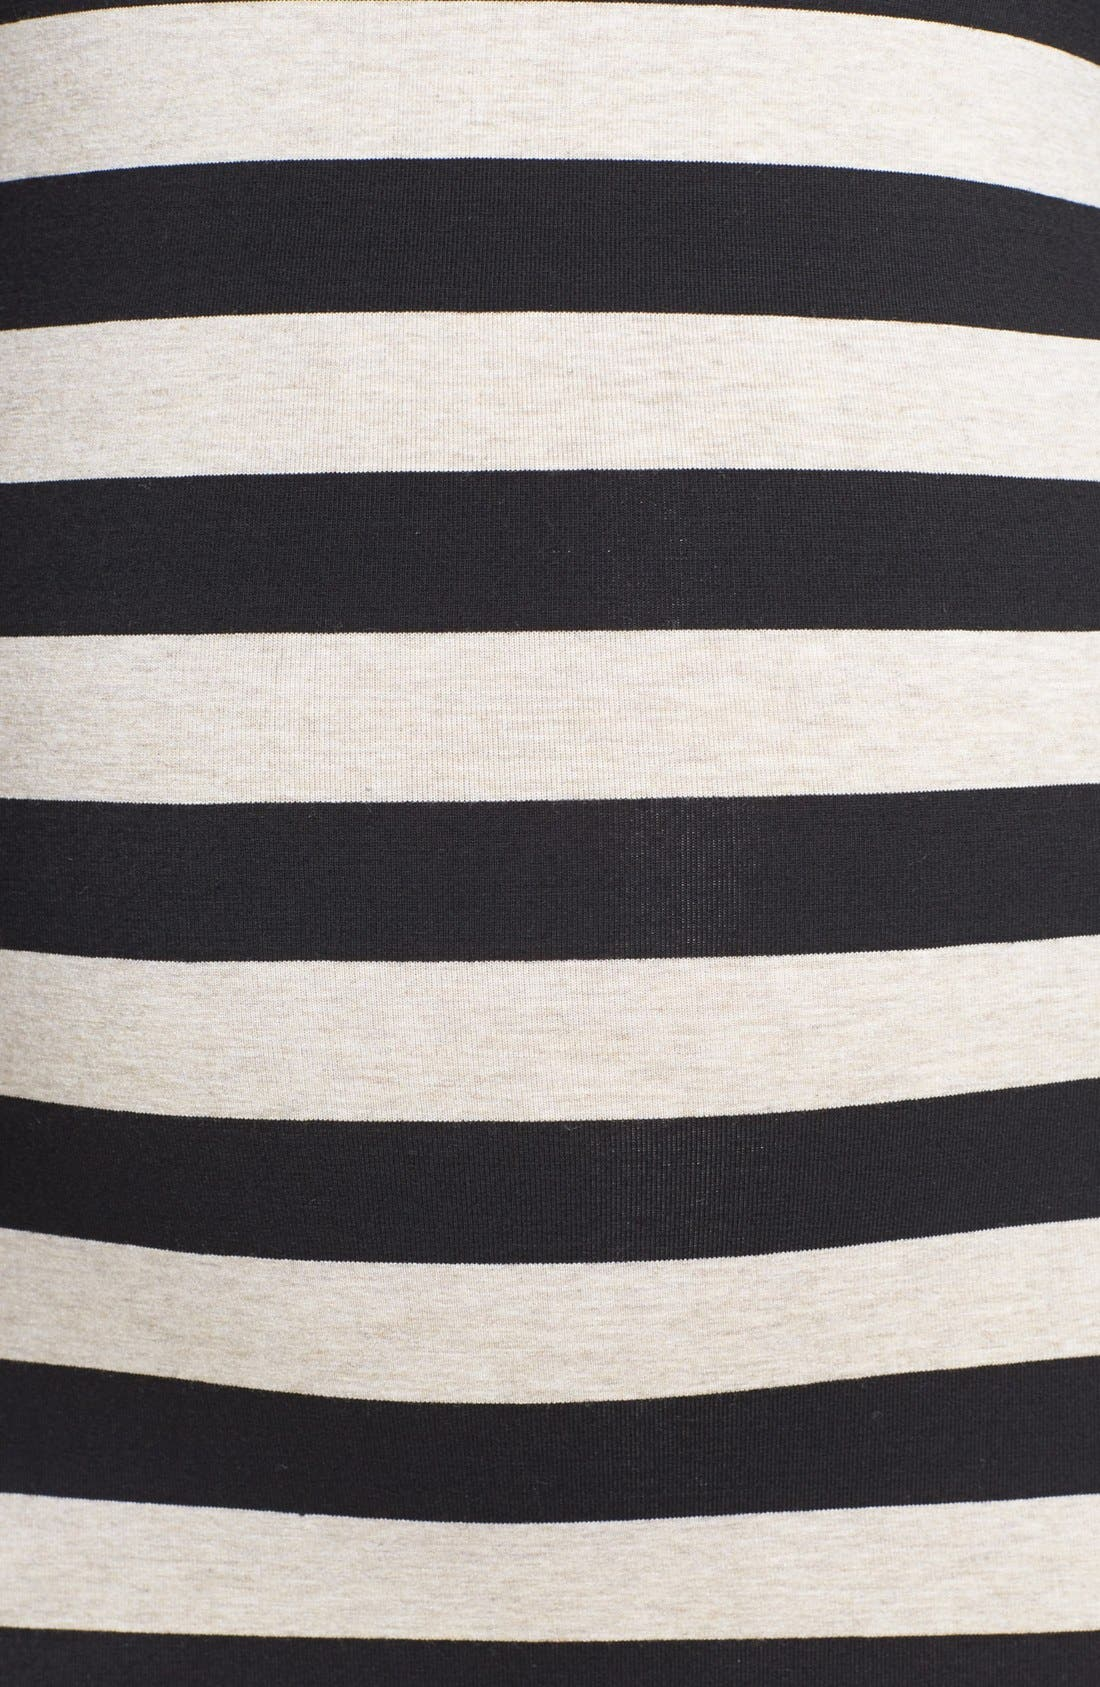 Alternate Image 3  - Nom Maternity 'Krystal' Stripe Maternity Dress